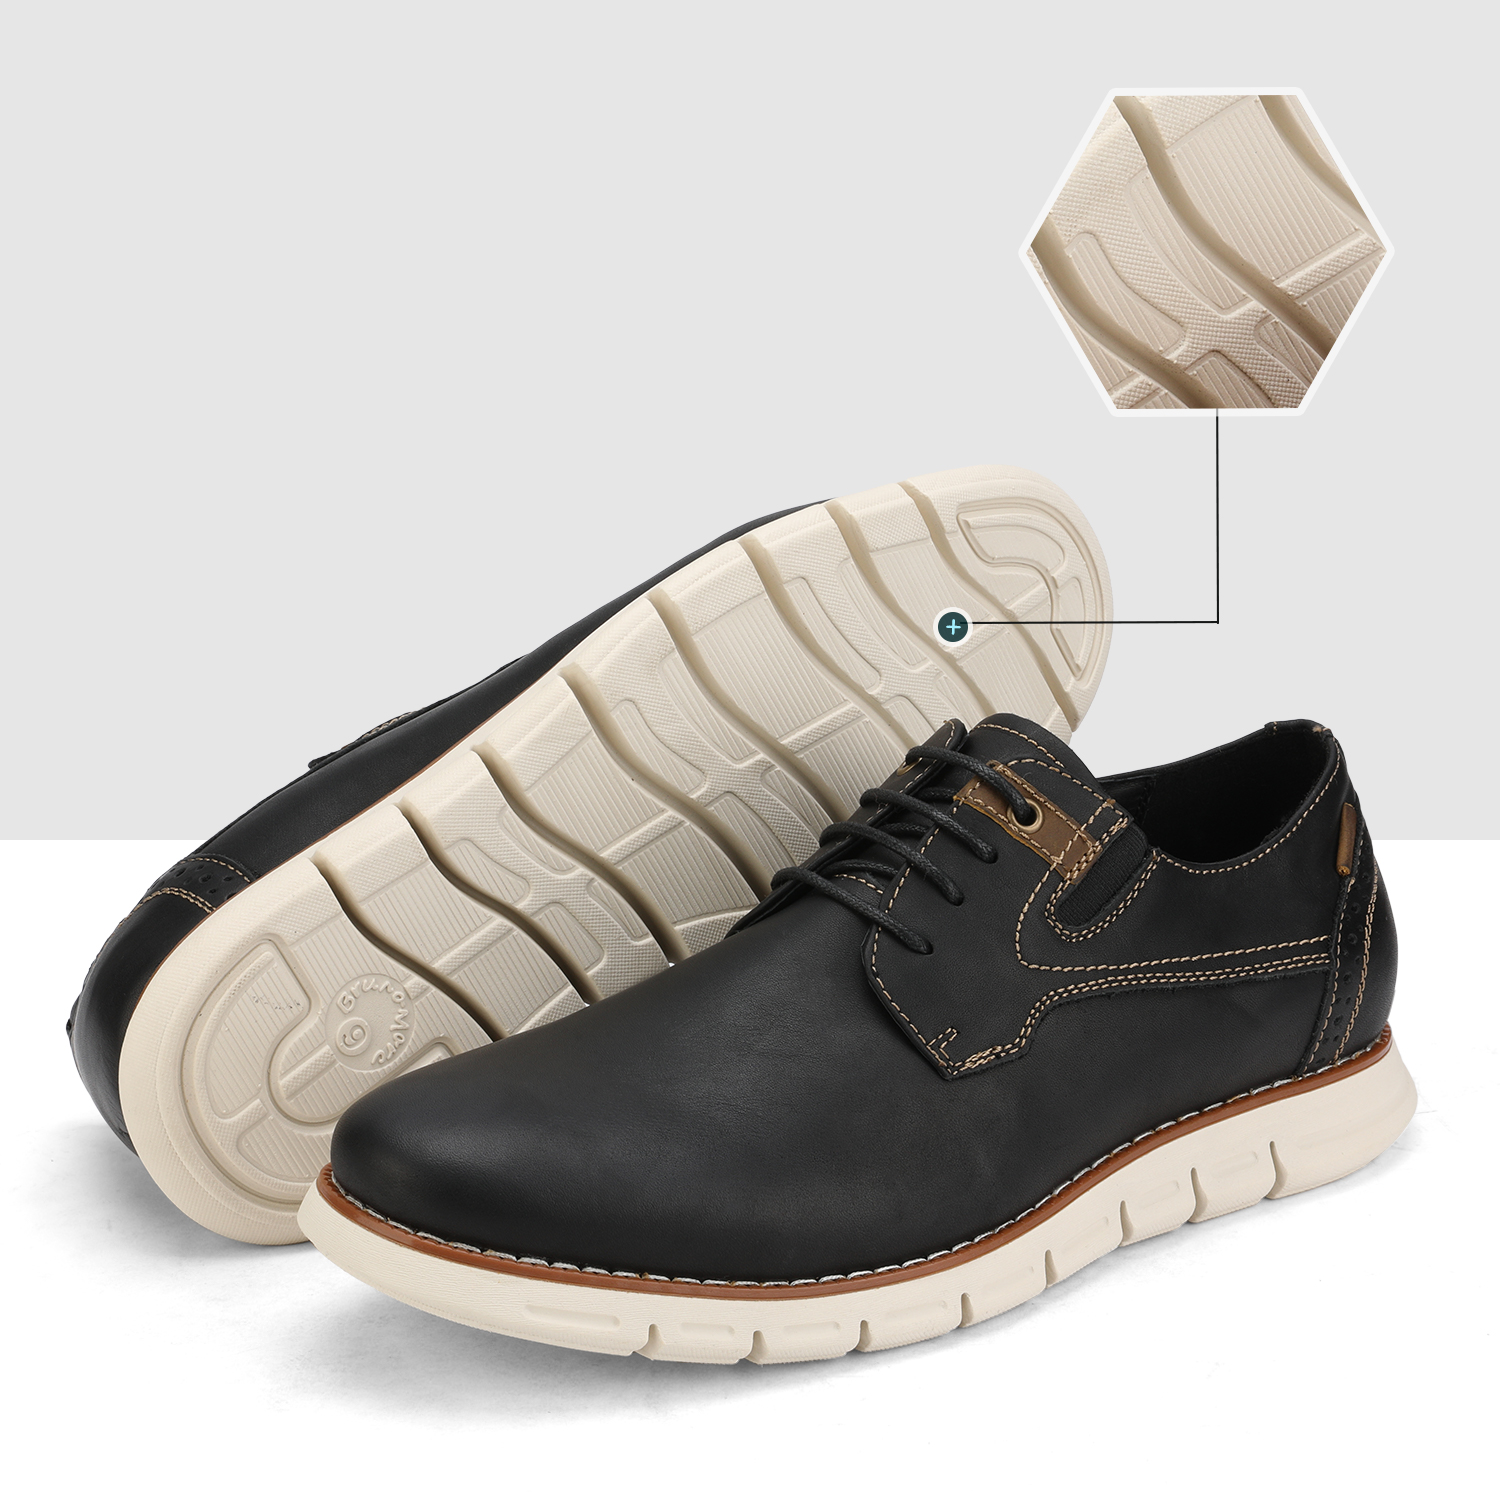 Men-s-Genuine-Leather-Casual-Formal-Sneakers-Lace-up-Business-Oxford-Dress-Shoes thumbnail 41